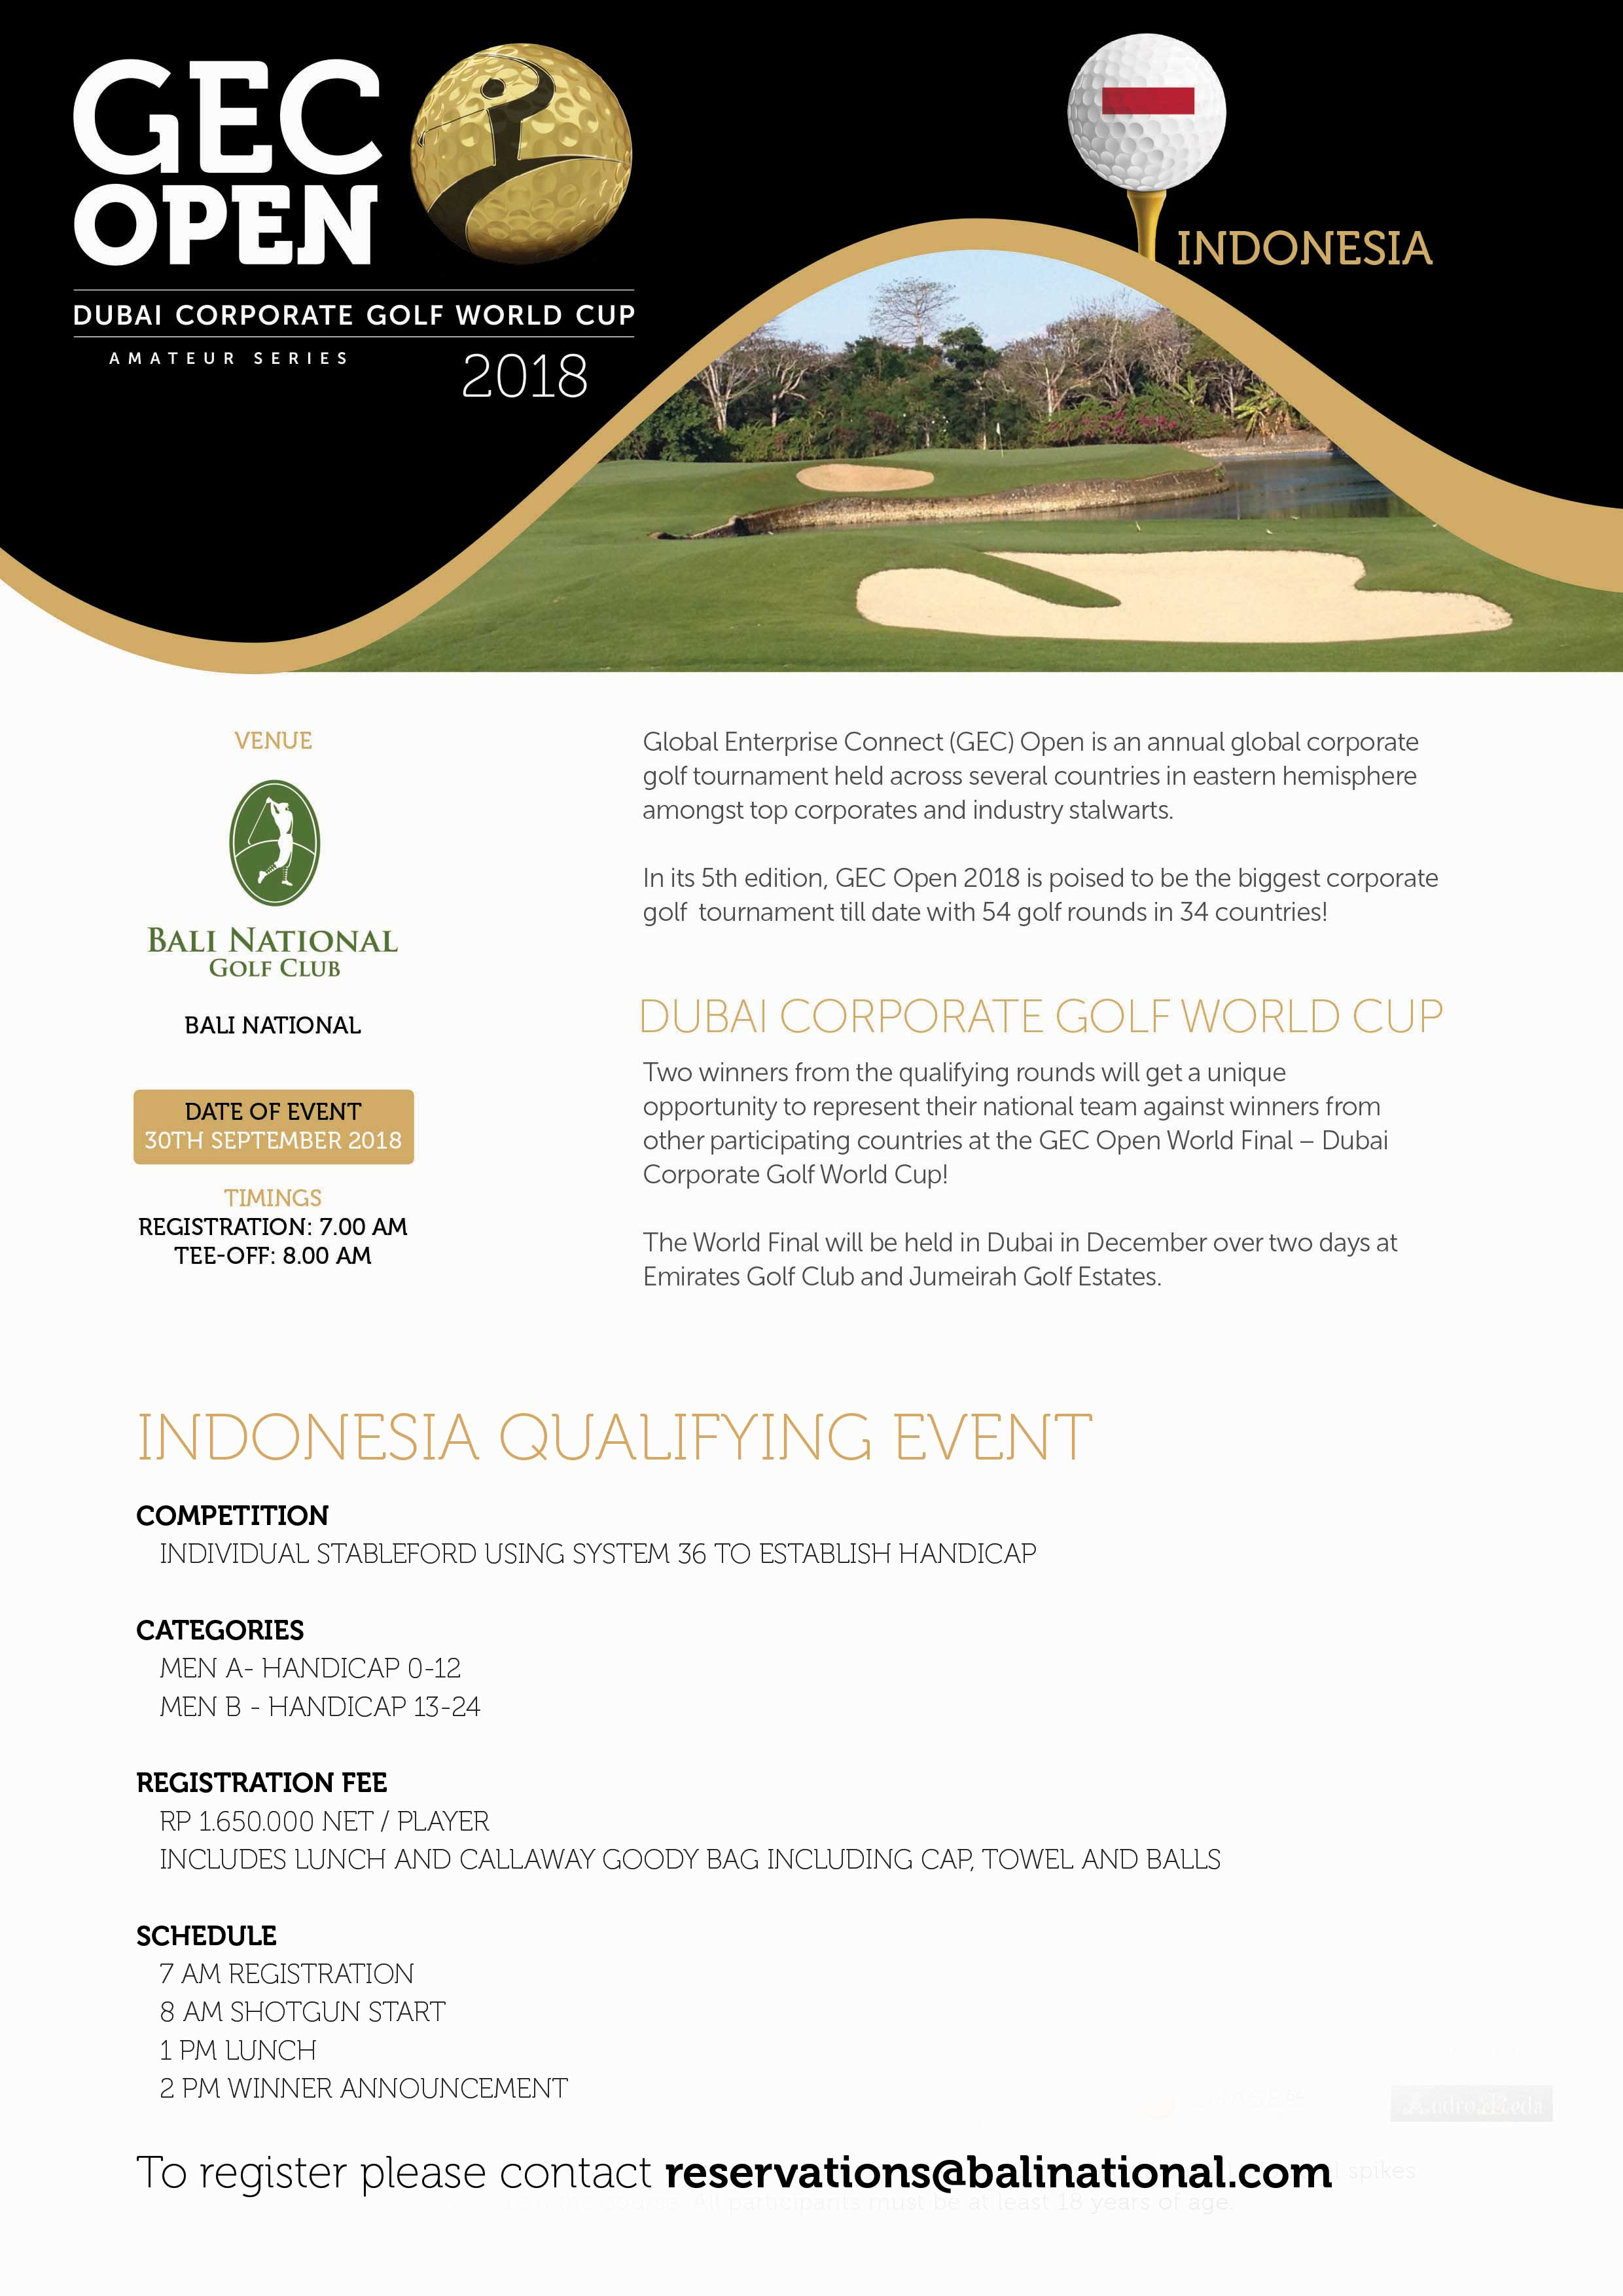 GEC OPEN - DUBAI CORPORATE GOLF WORLD CUP 2018